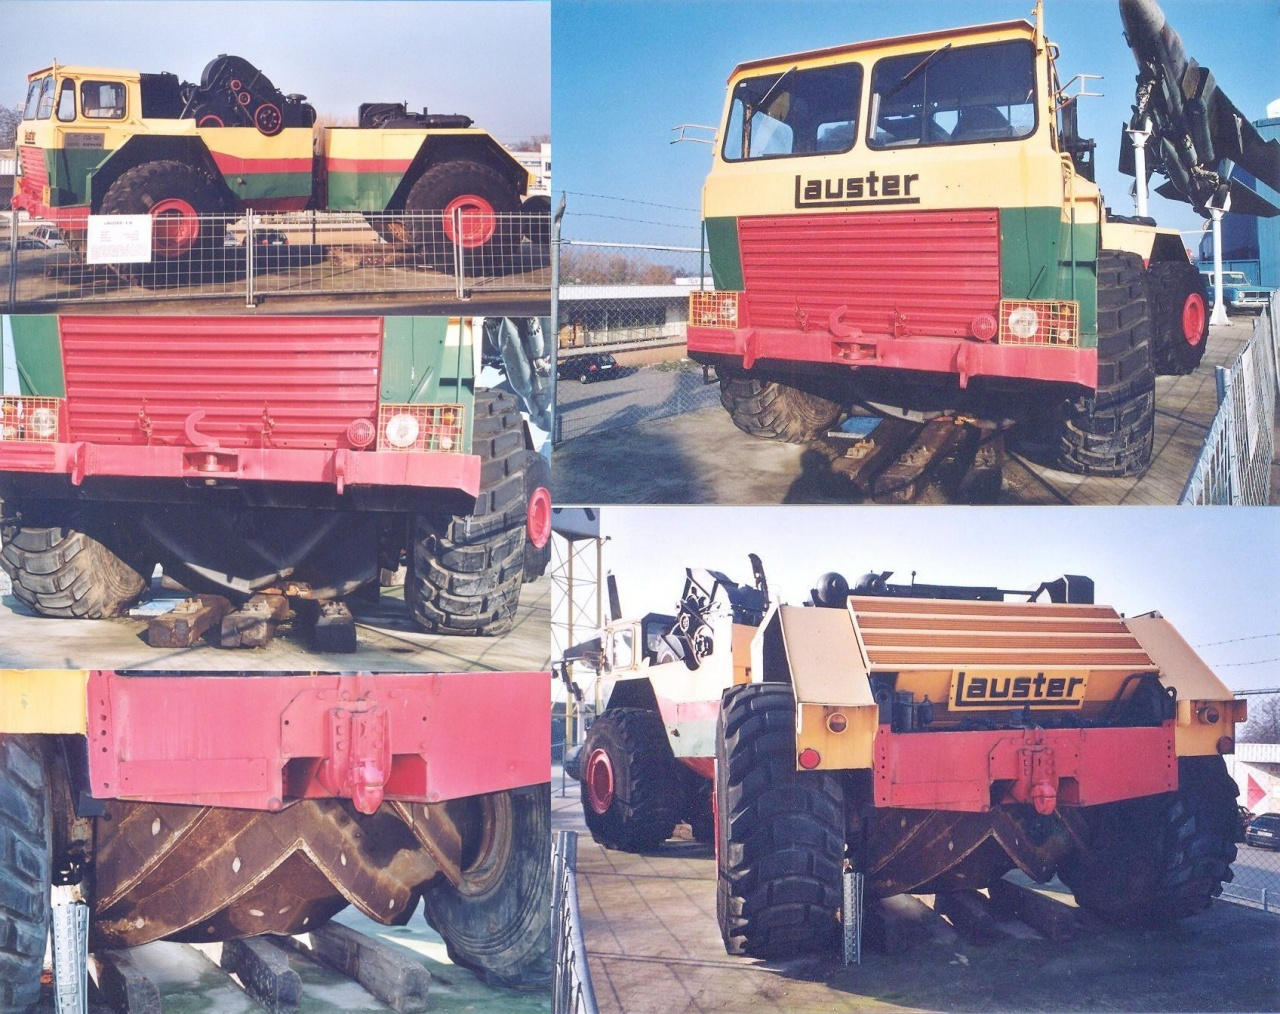 Lauster 4x4 articulated